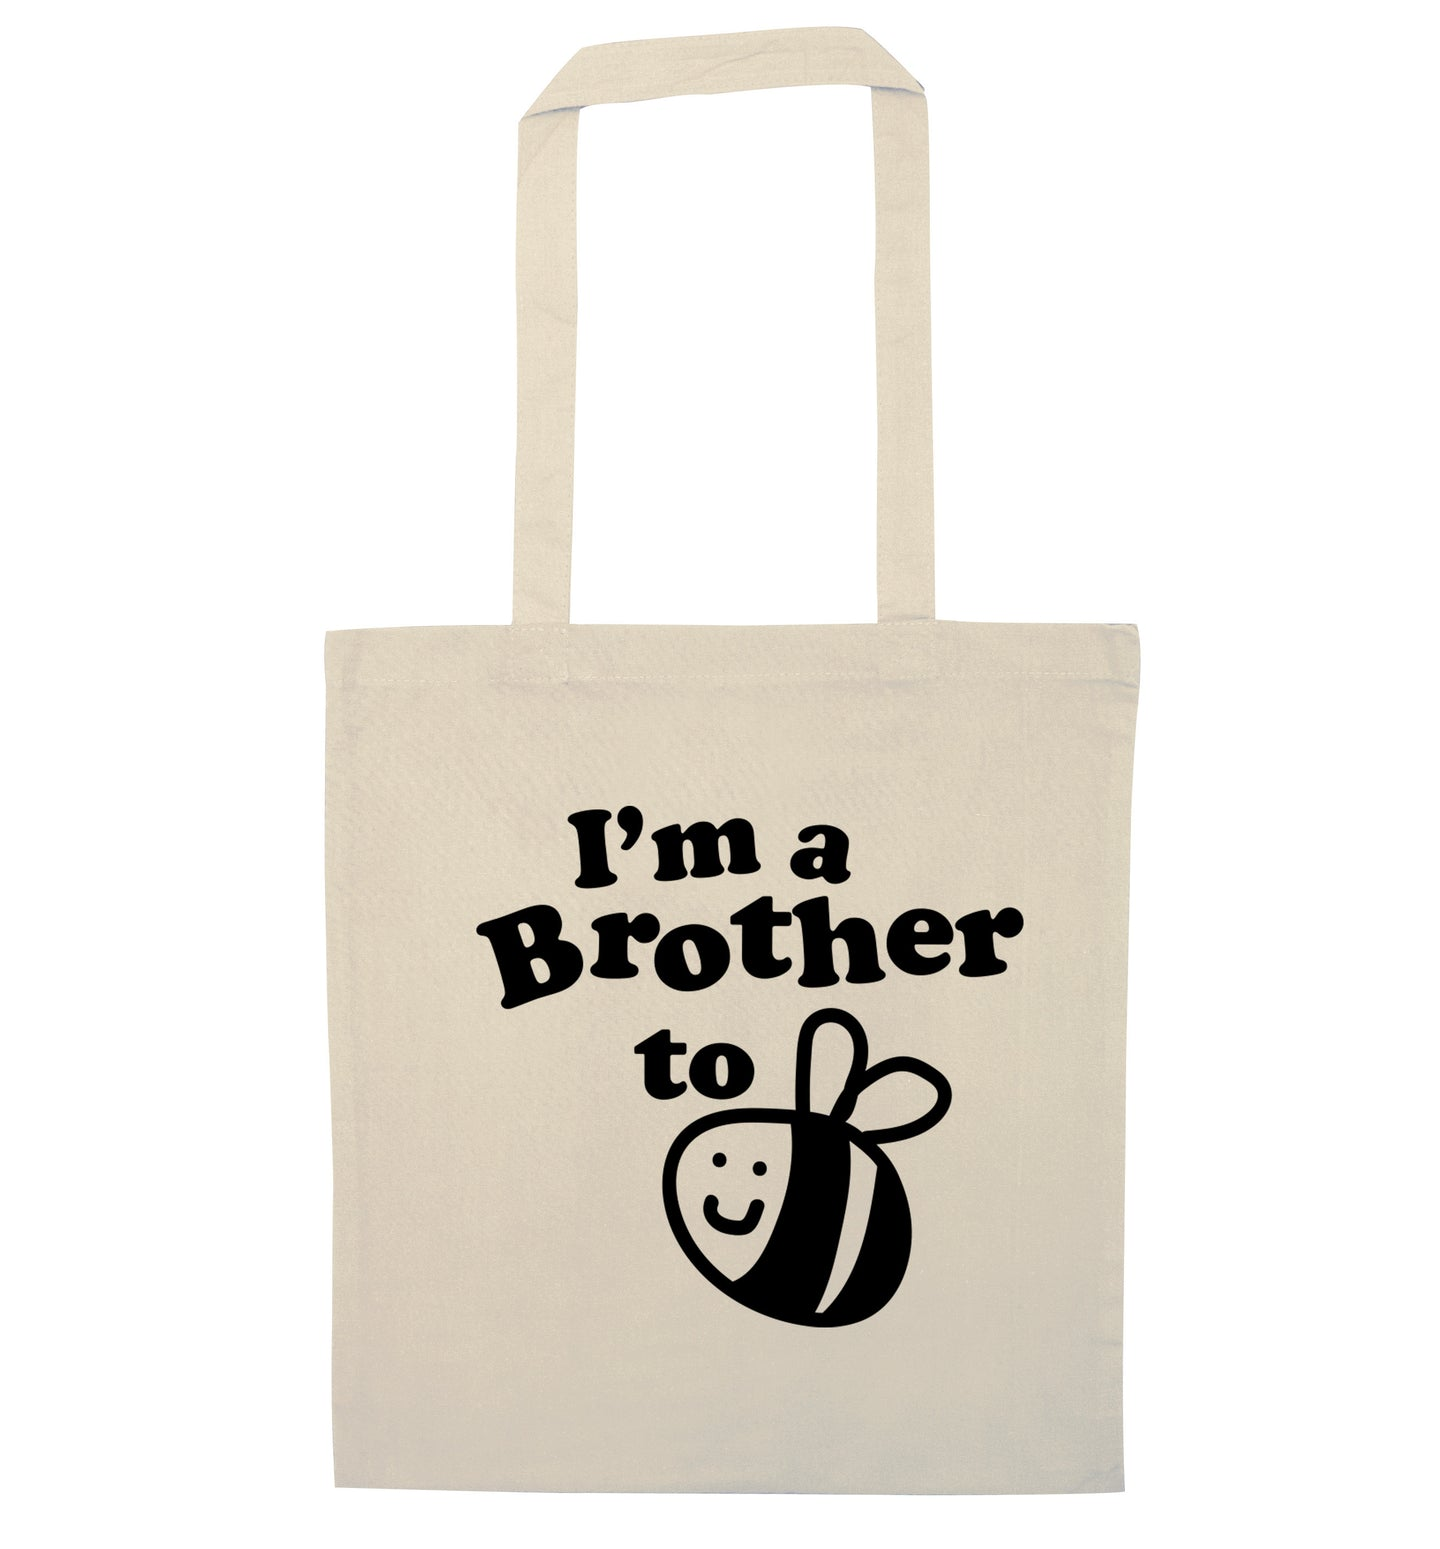 I'm a brother to be natural tote bag